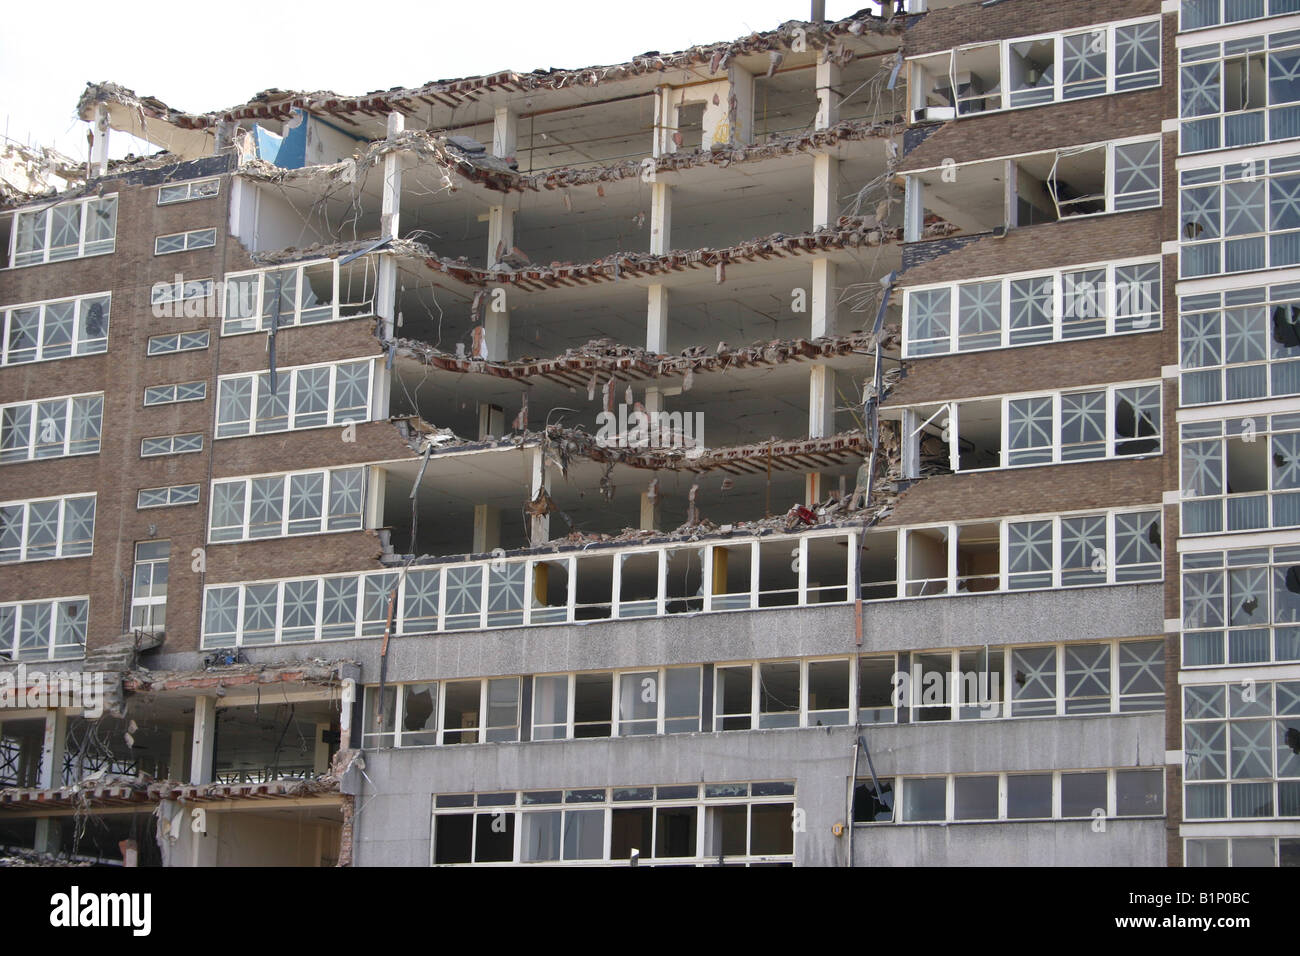 A partly demolished building in a U.K. city. - Stock Image